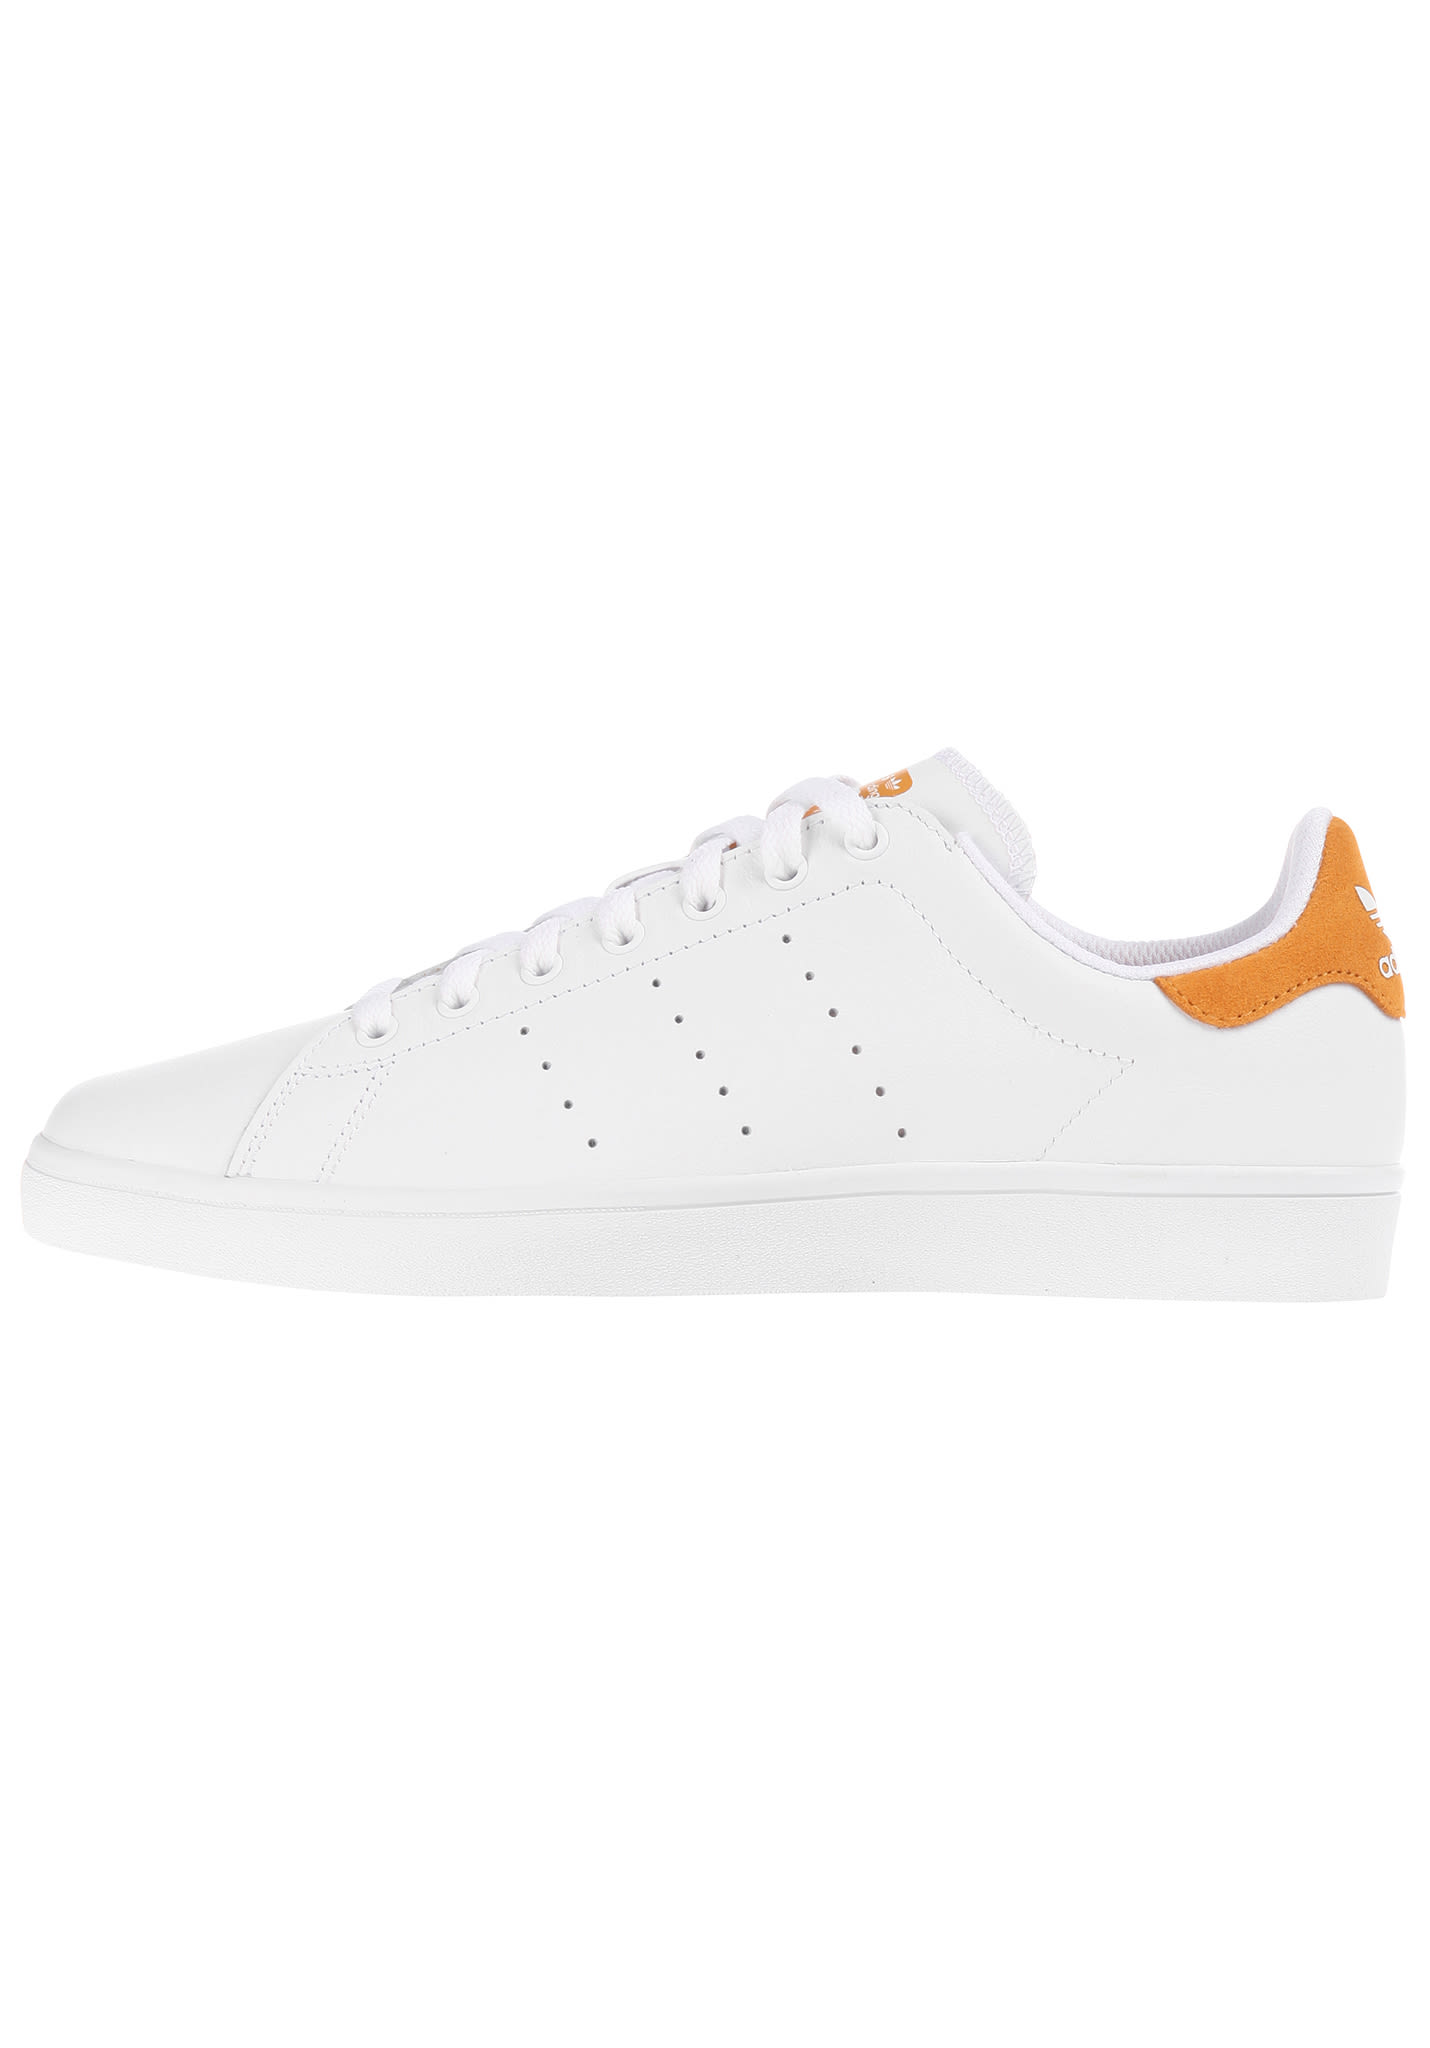 pretty nice 3db4f 3681c Adidas Skateboarding Stan Smith Vulc - Sneakers for Men - White - Planet  Sports